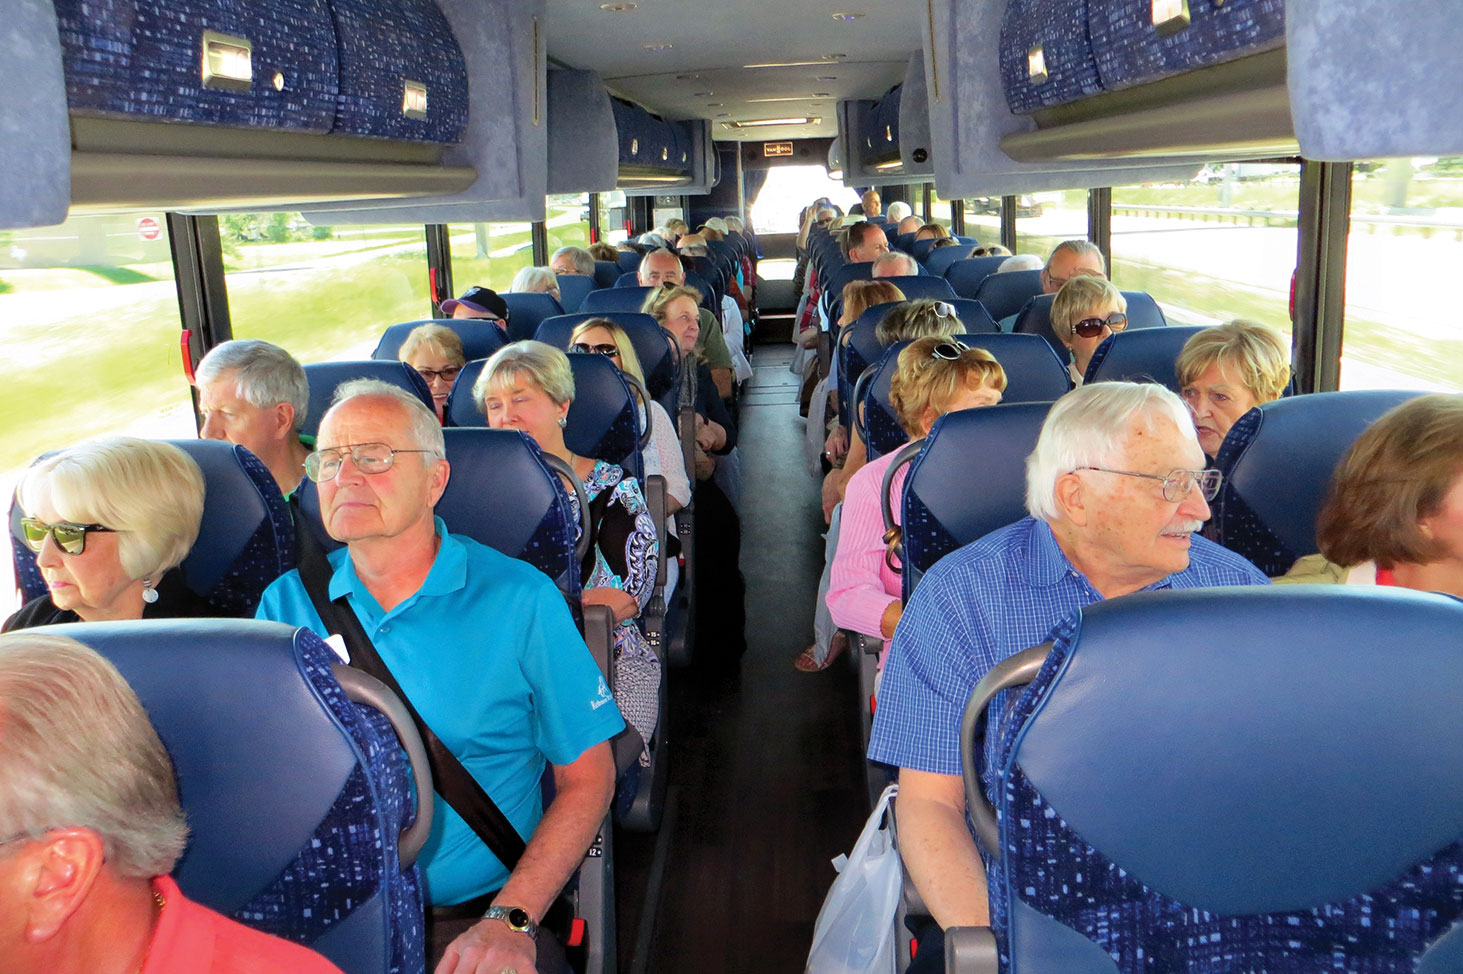 All aboard for fun-filled travel with Road Runners